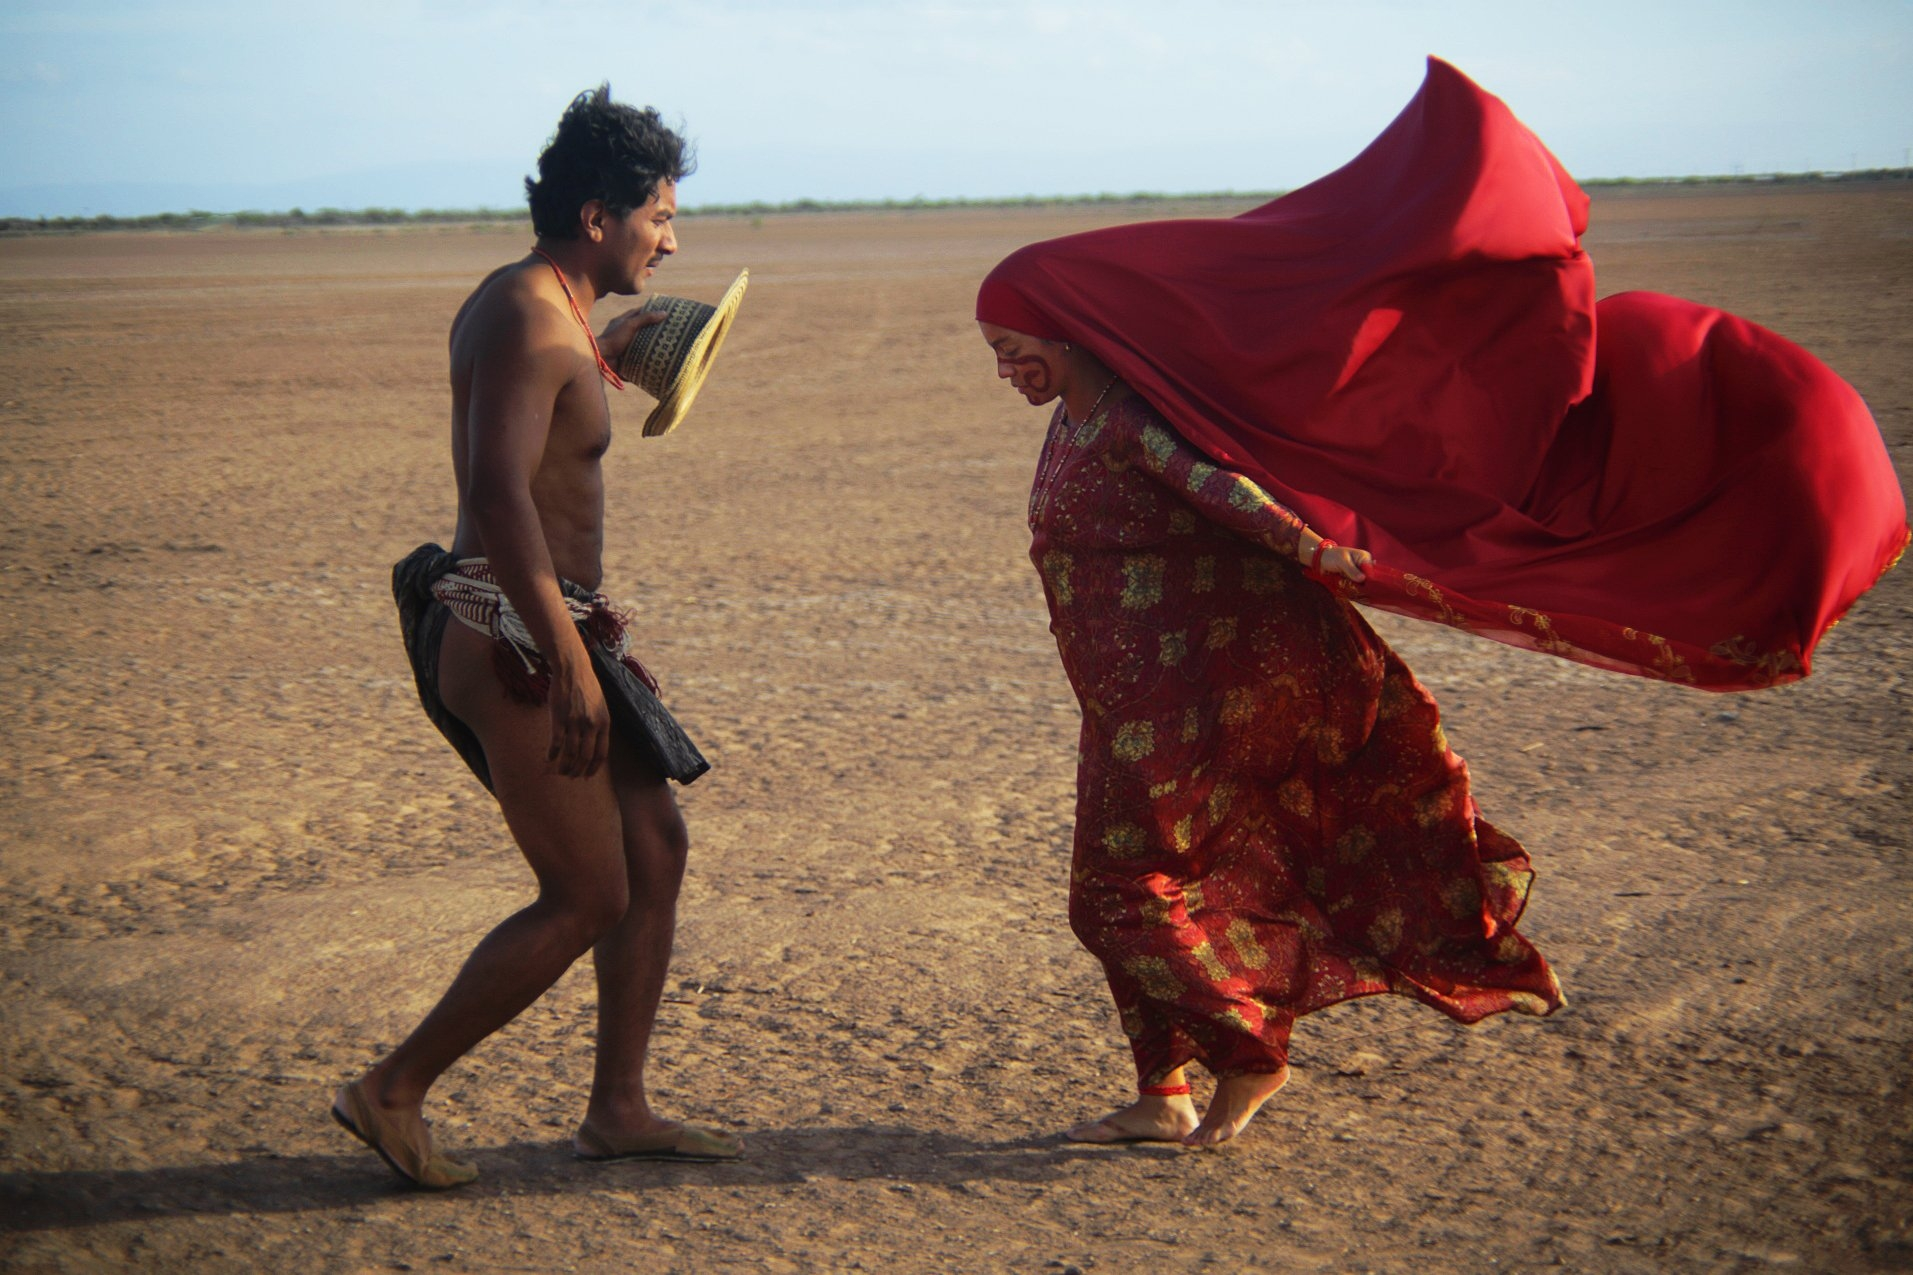 Yonna dance in Birds of Passage film